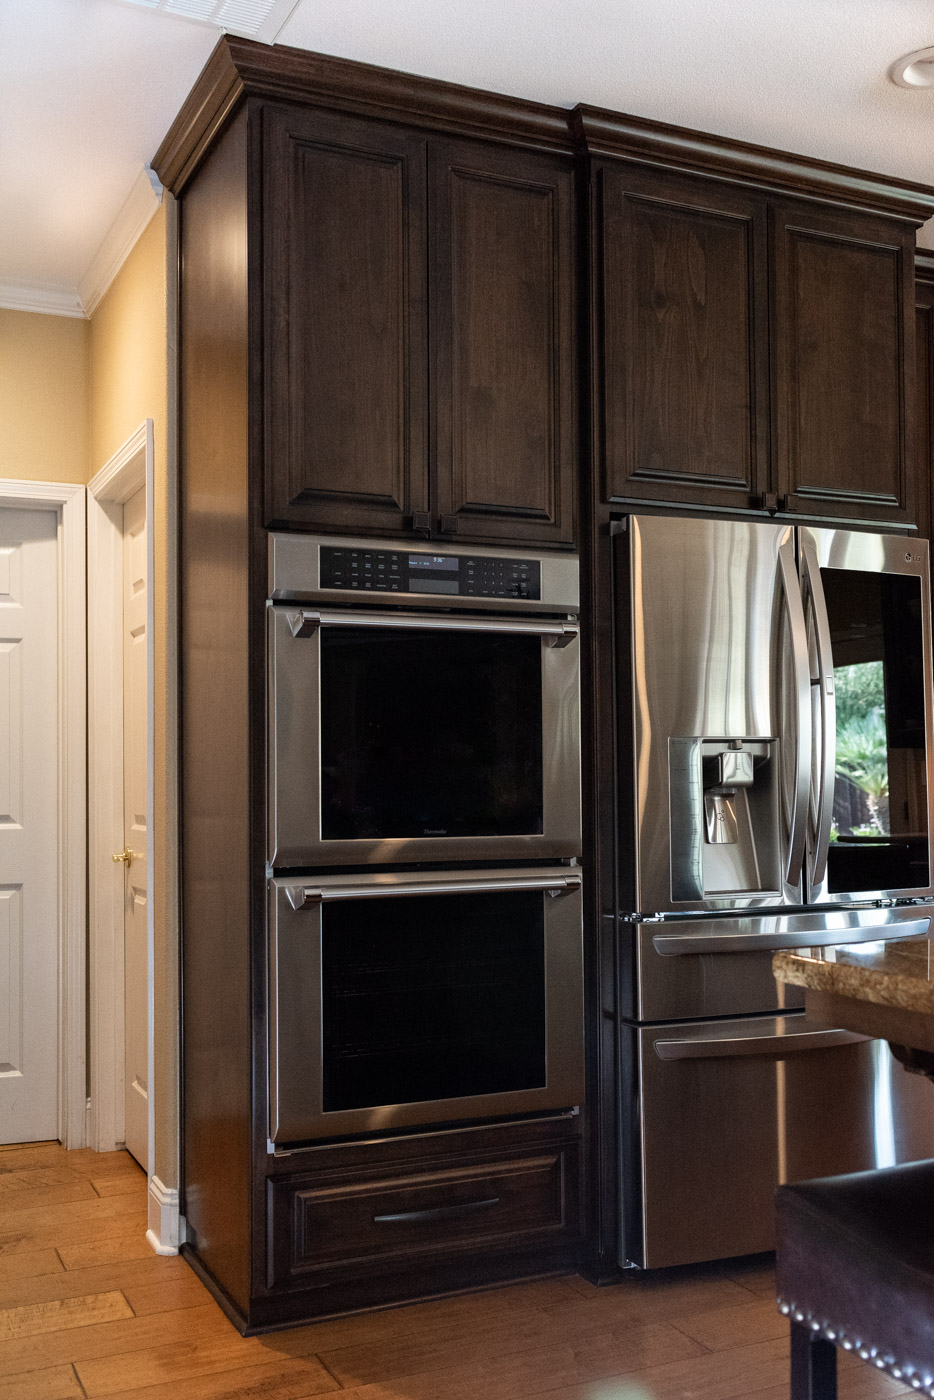 Traditional Mediterranean kitchen with dark wood stain cabinets and double oven